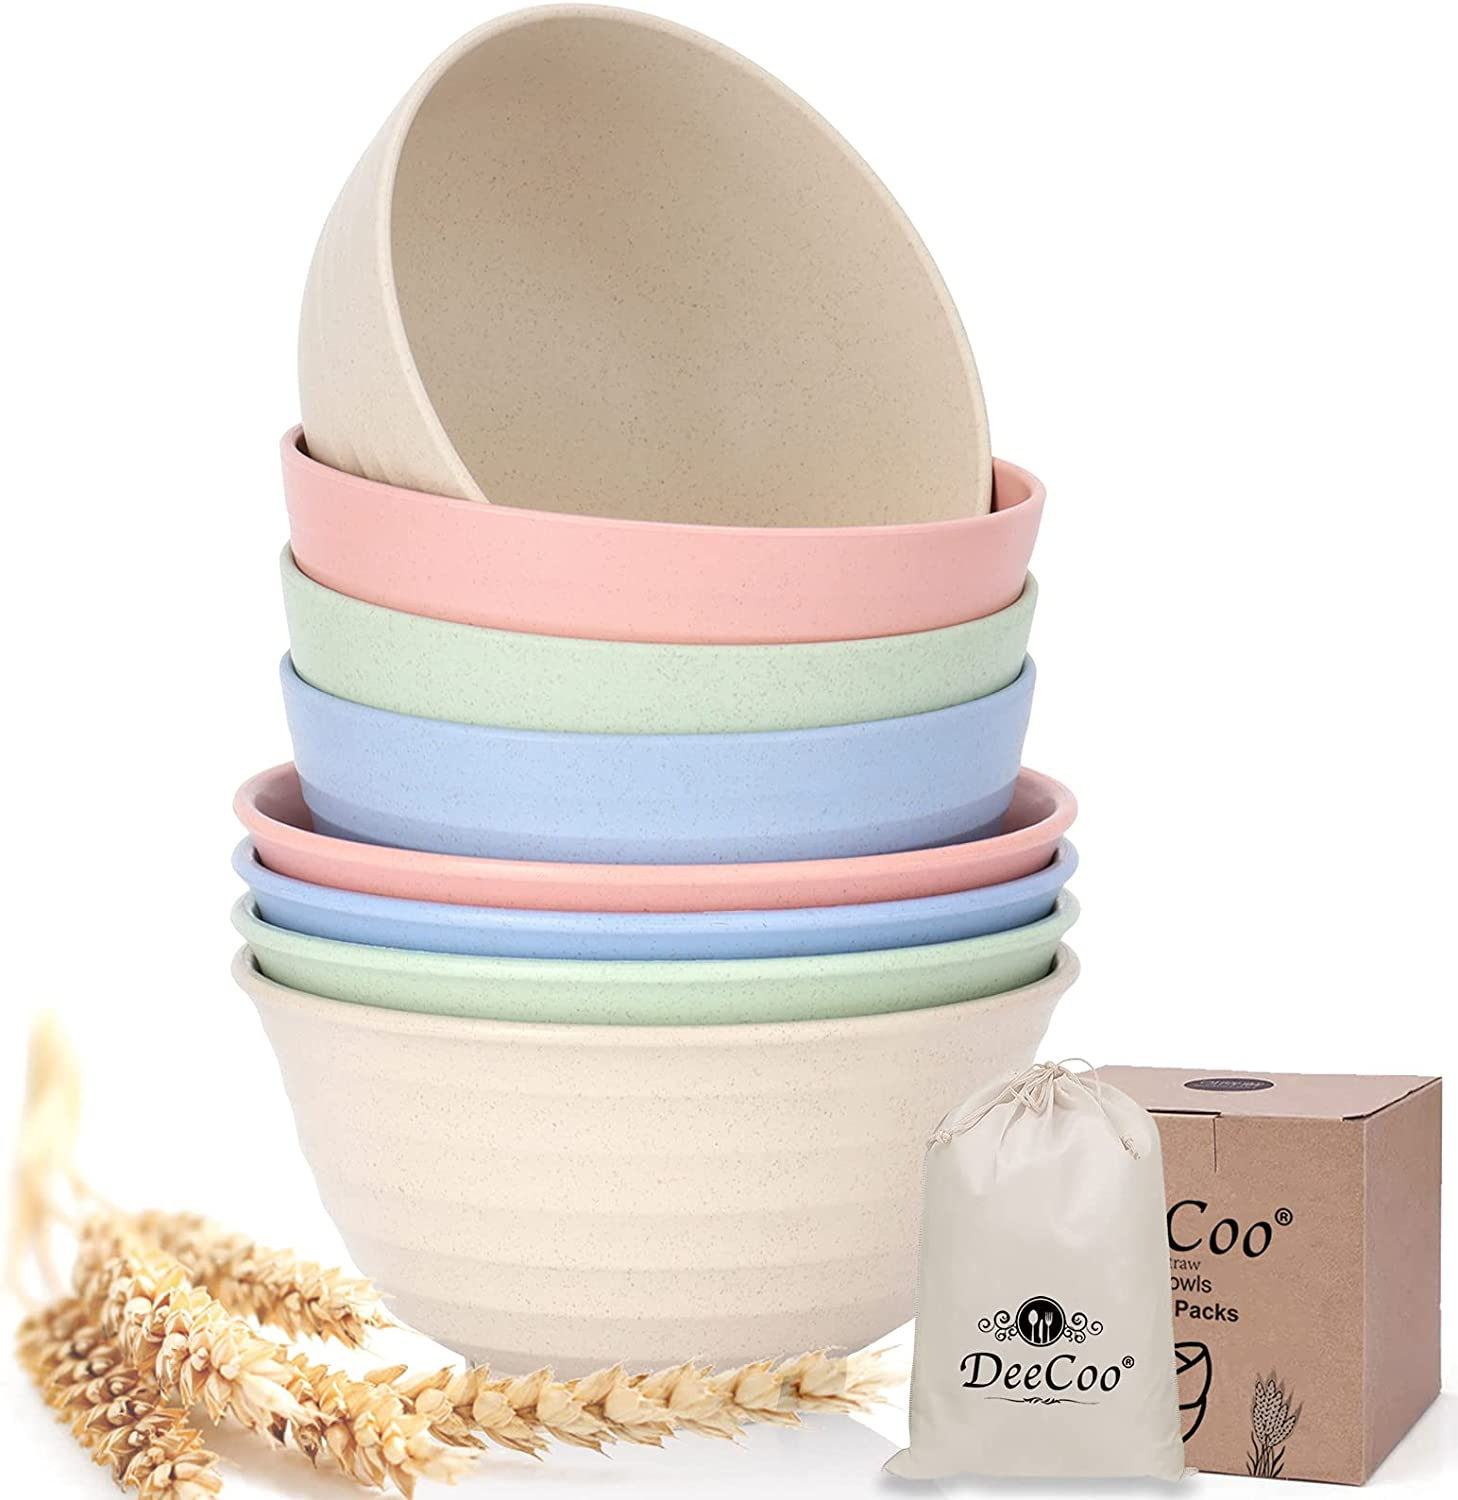 DeeCoo Mixed Size discount Unbreakable Cereal Bowls Gifts 24 30 OZ Wheat Str -